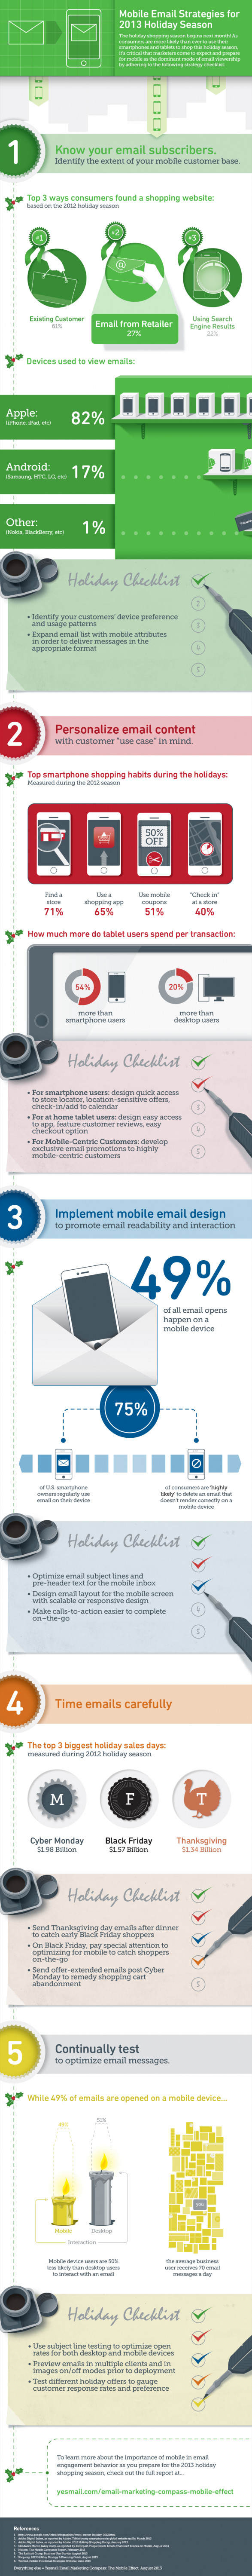 Mobile-Centric Strategies For Thanksgiving and Holiday Season [INFOGRAPHIC]